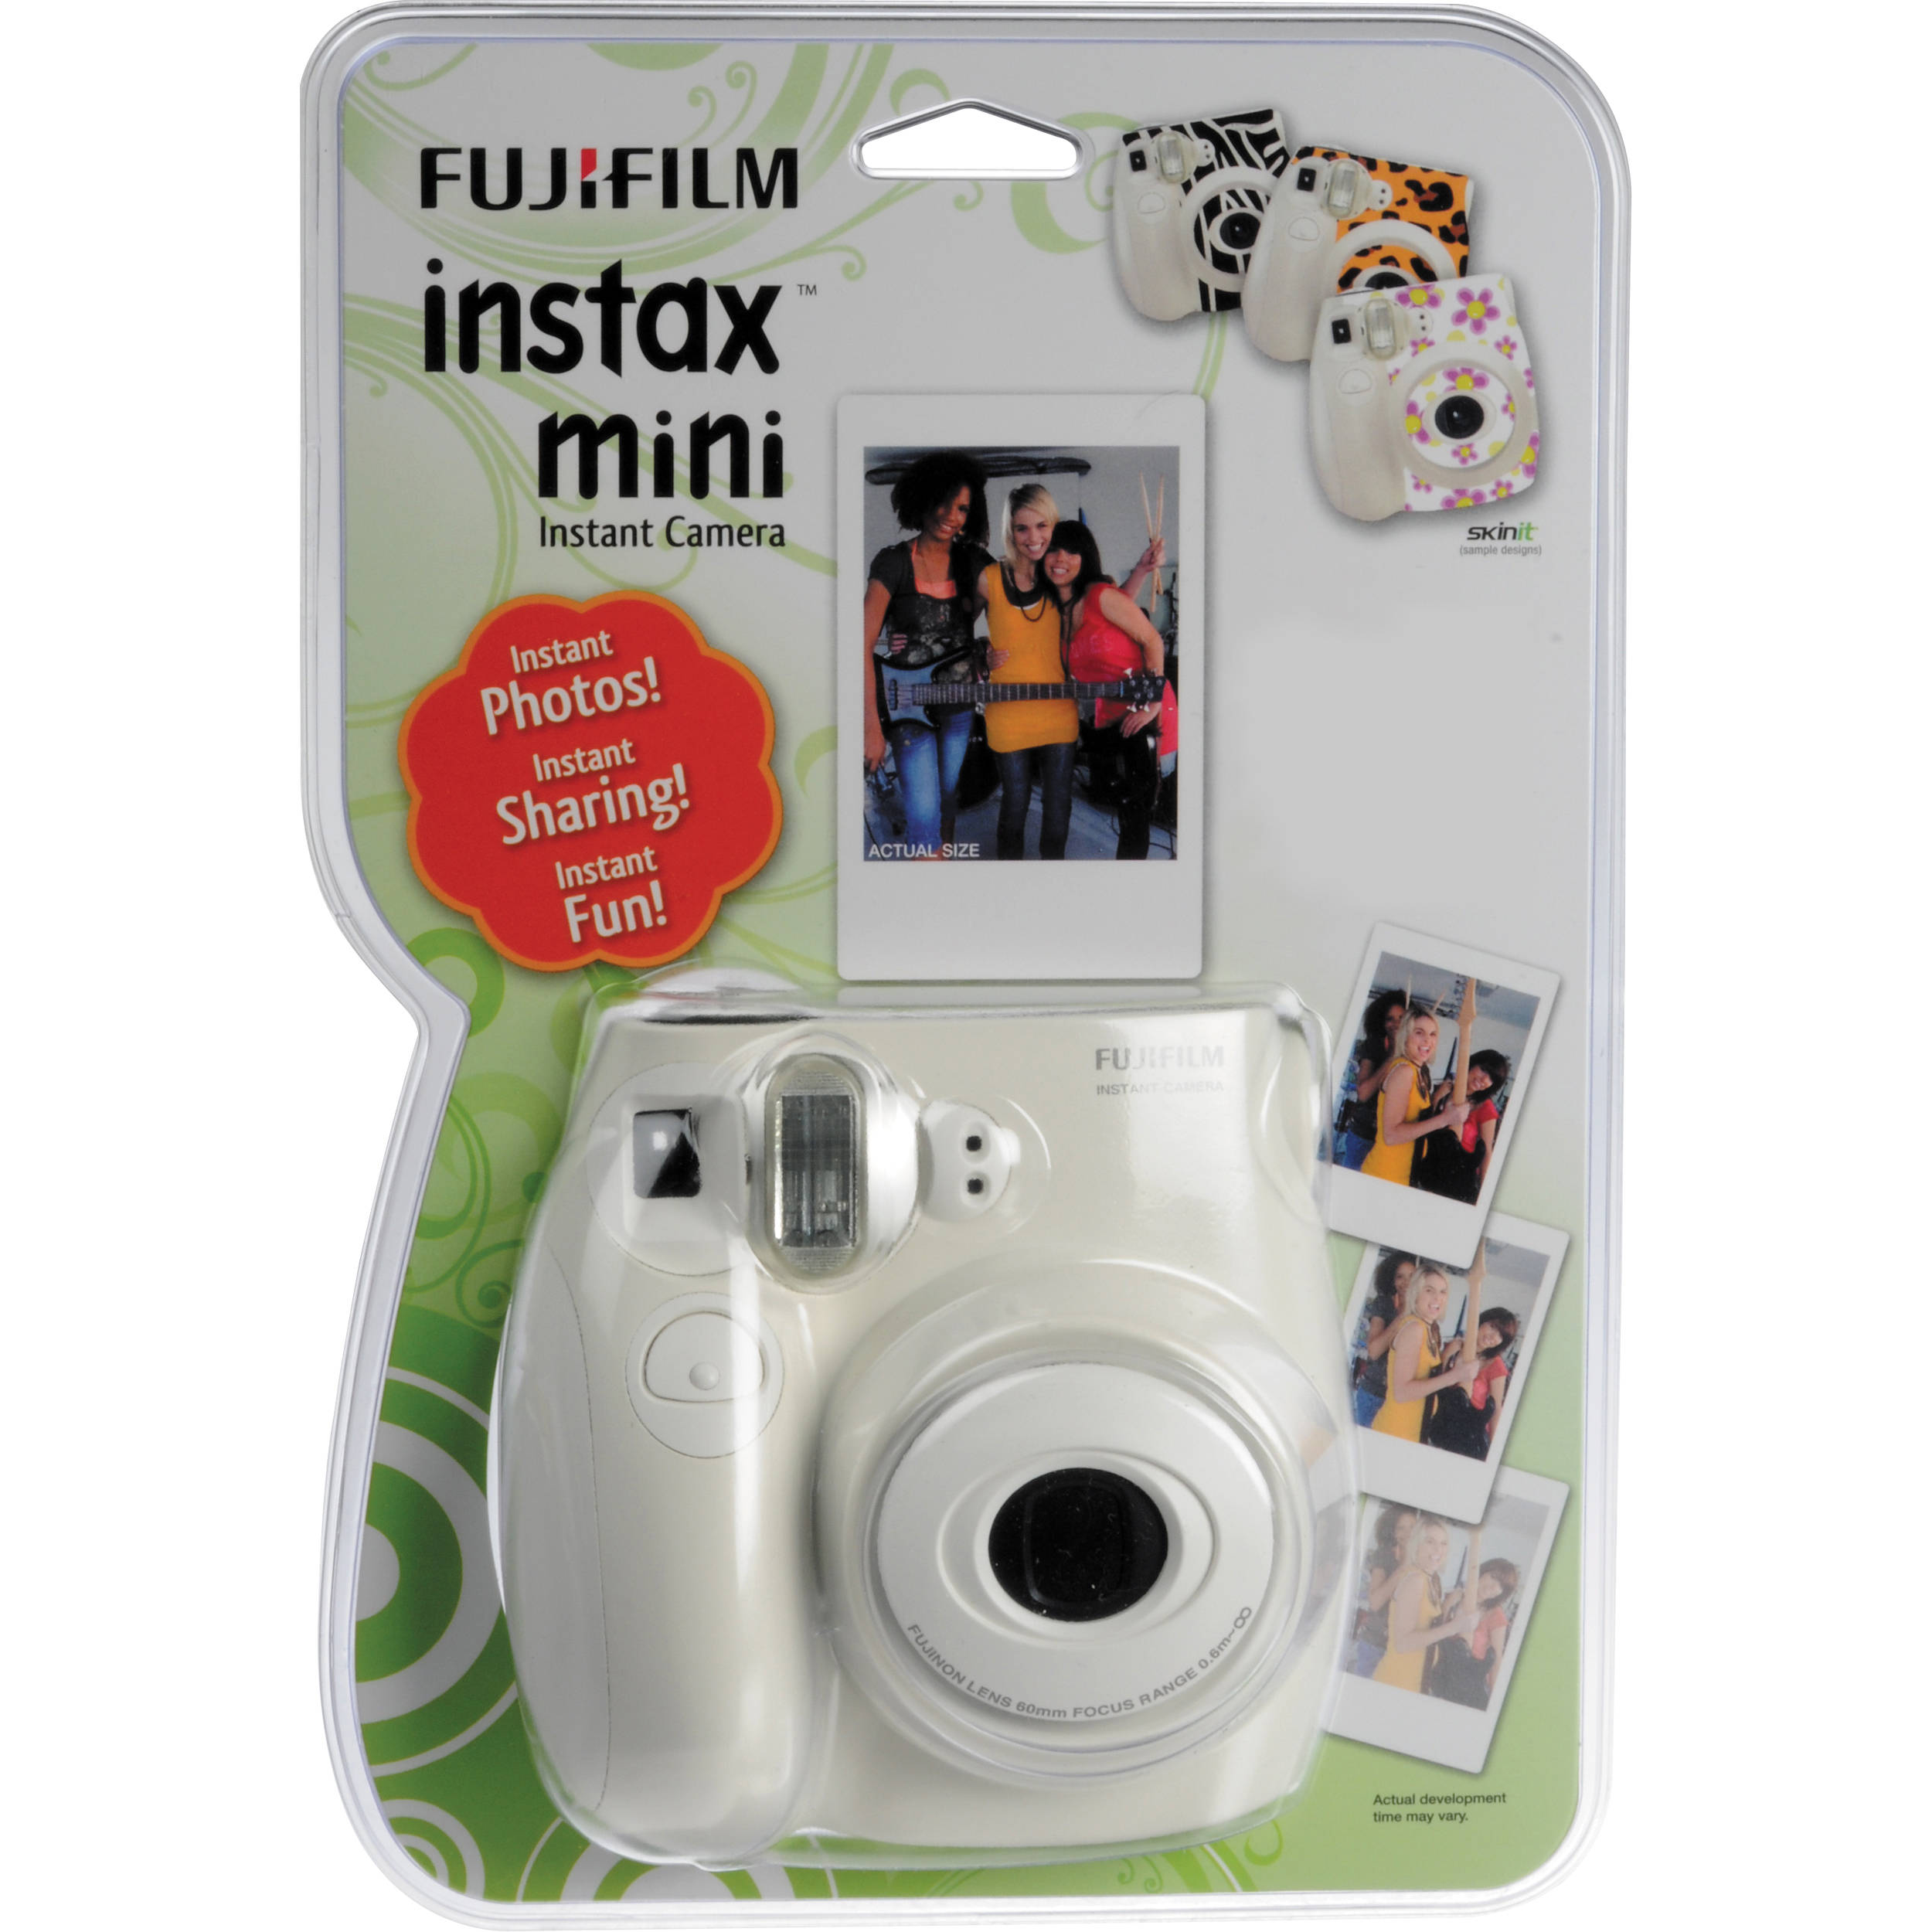 fujifilm instax mini 7s blister pack 600008773 b h photo video. Black Bedroom Furniture Sets. Home Design Ideas